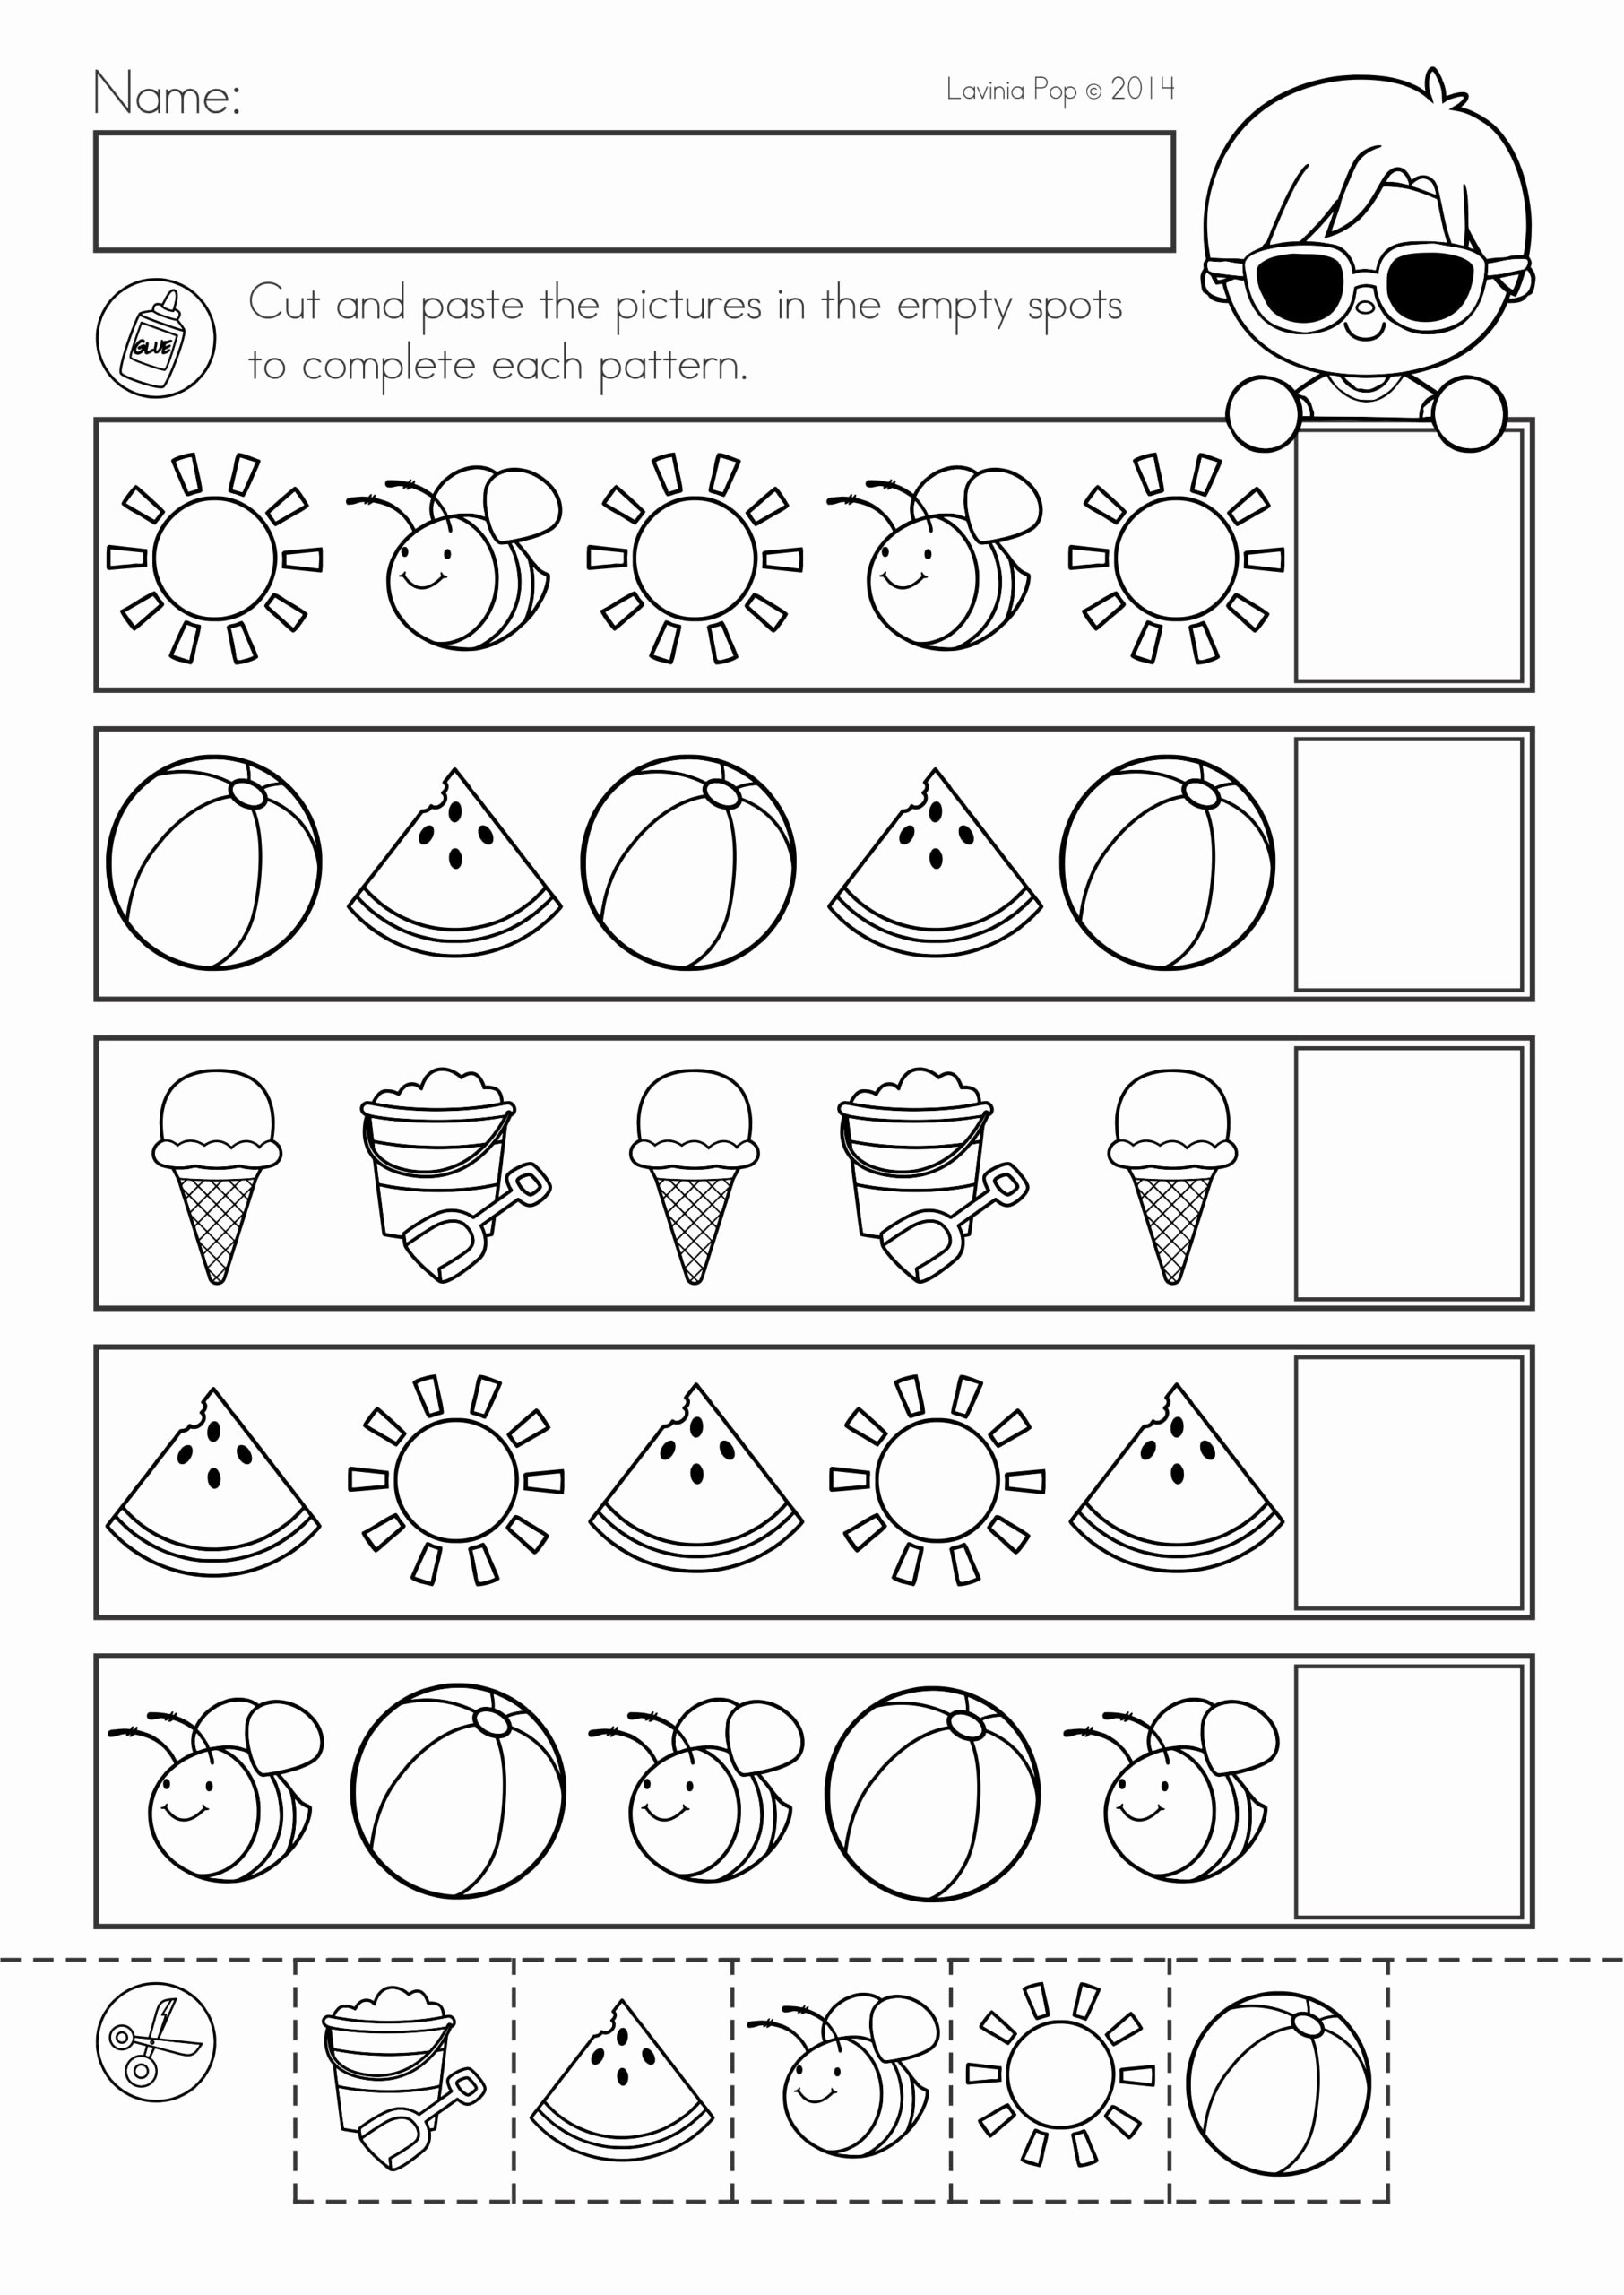 hiddenfashionhistory page 28 language worksheets for kindergarten